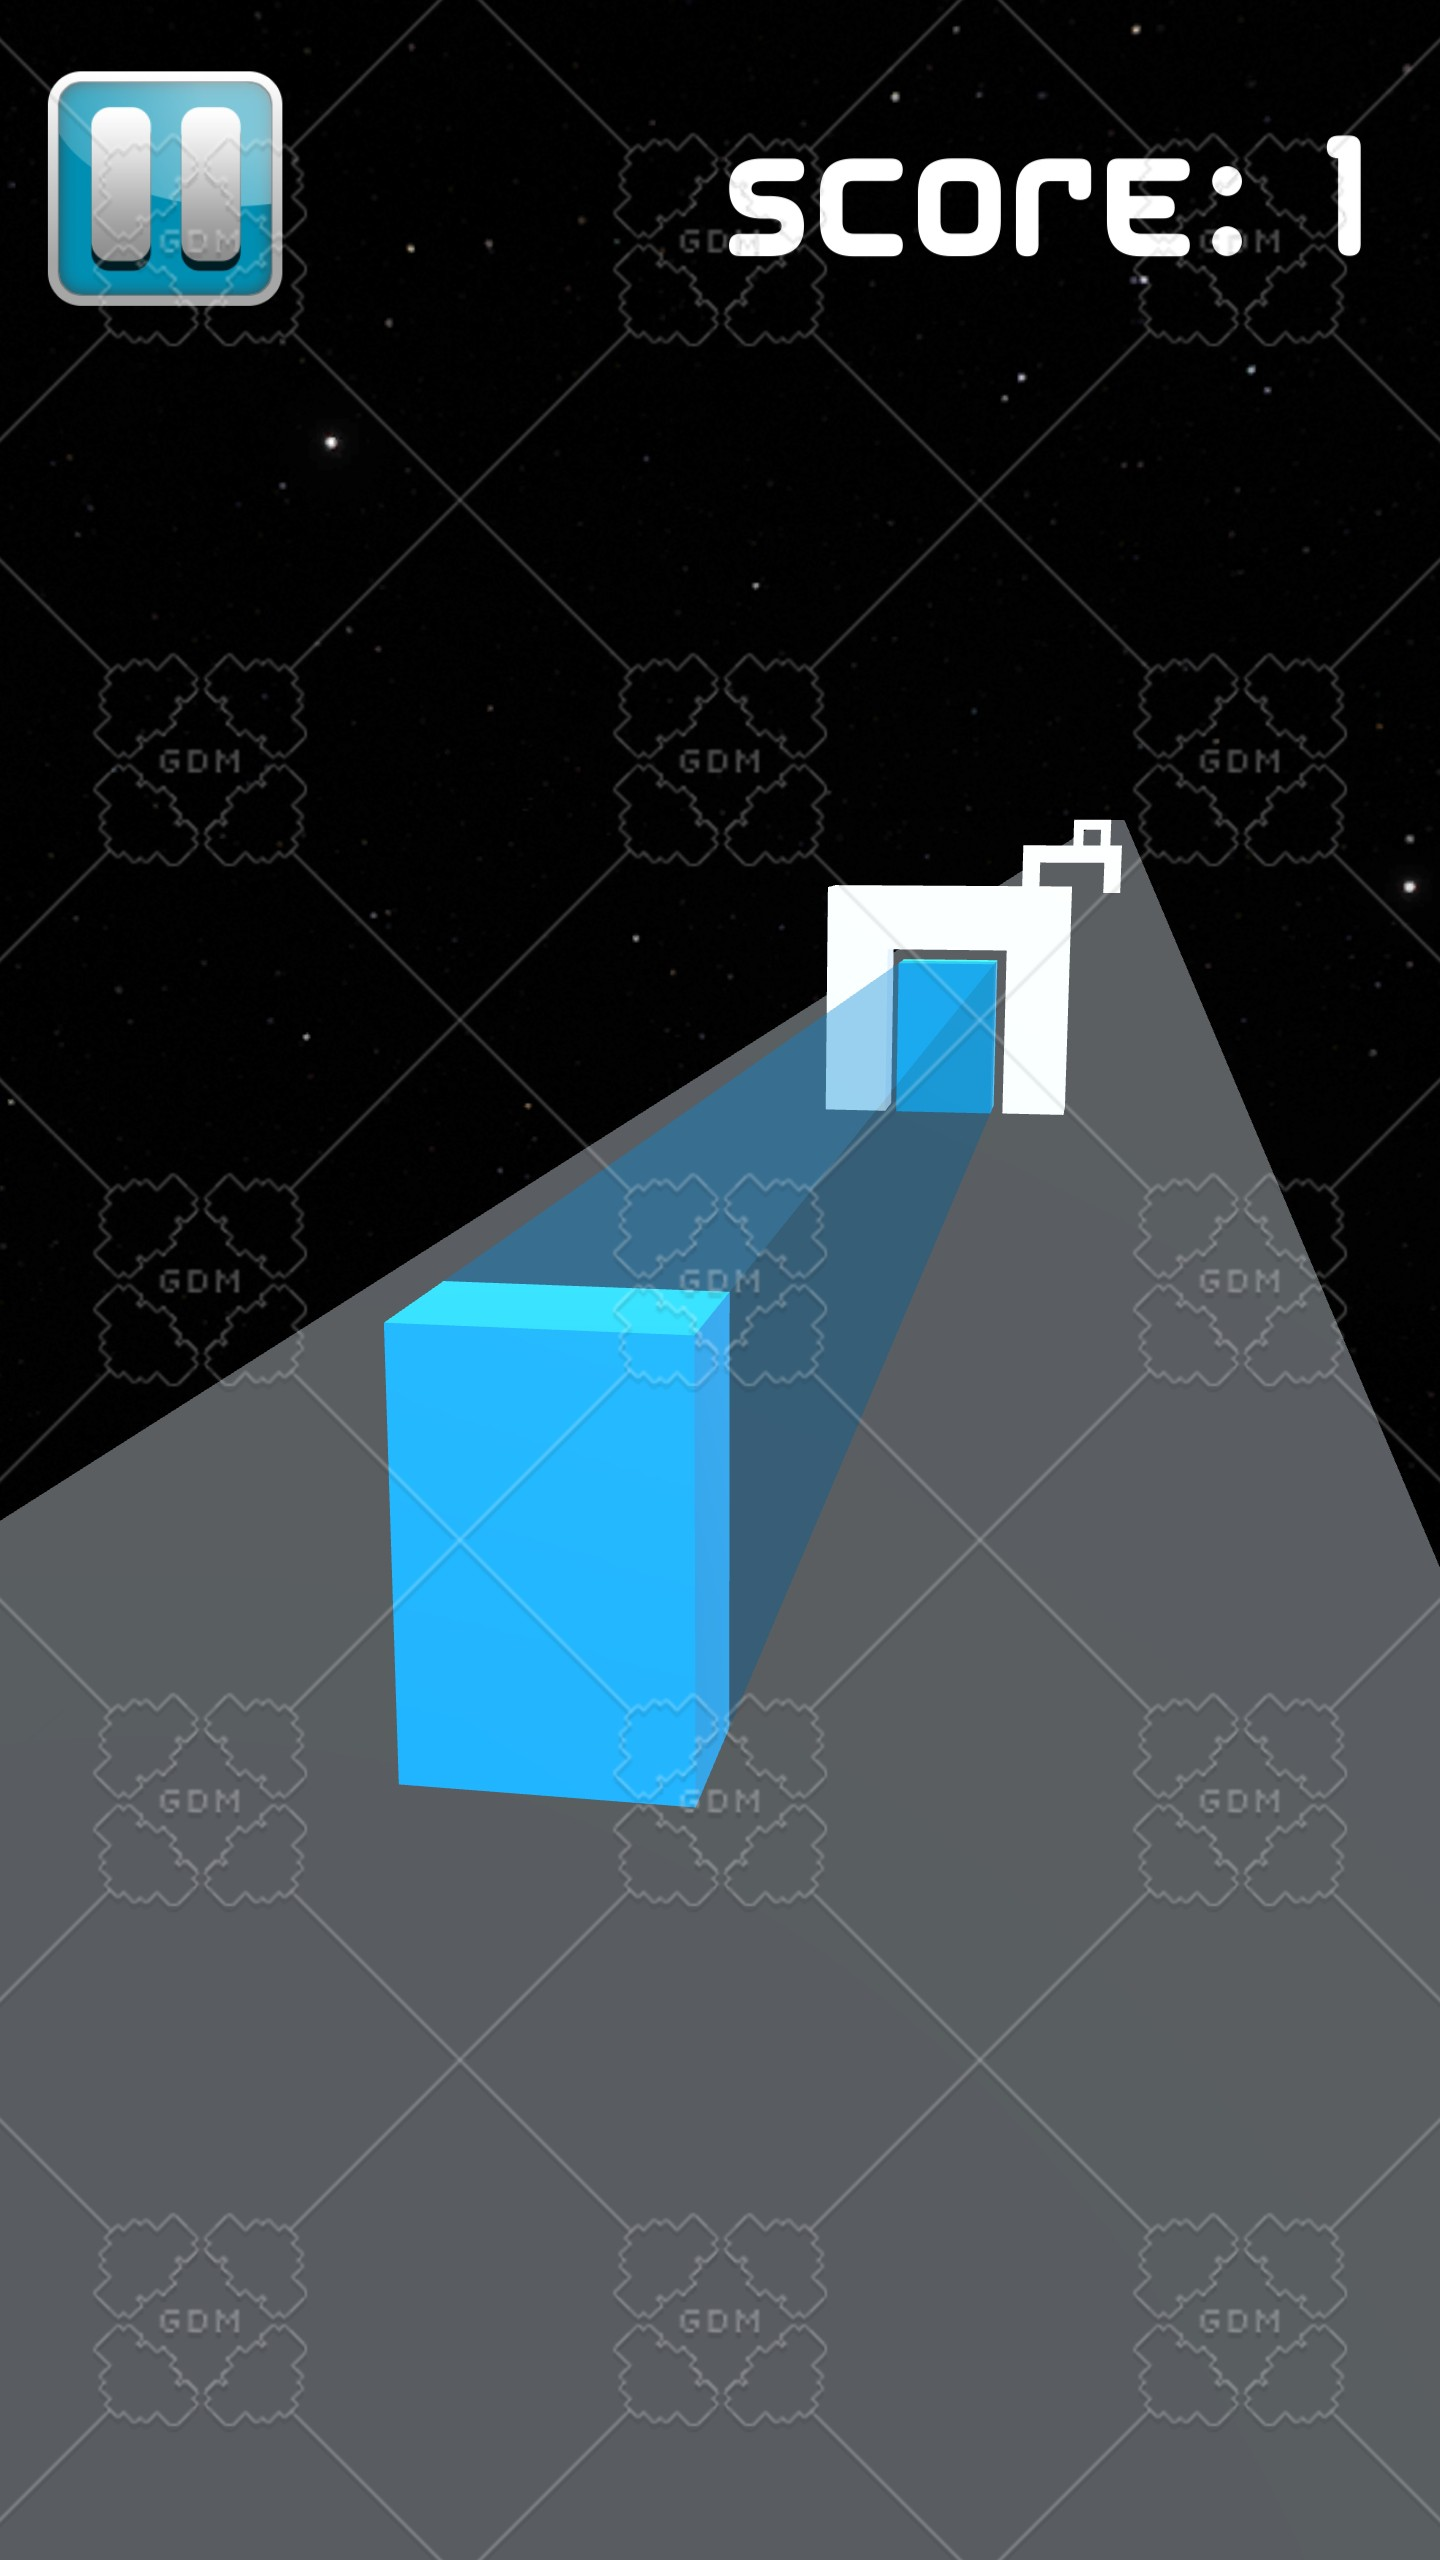 Shift The Shape - Shift jelly up  down to change its form so it can fit through the obstacles